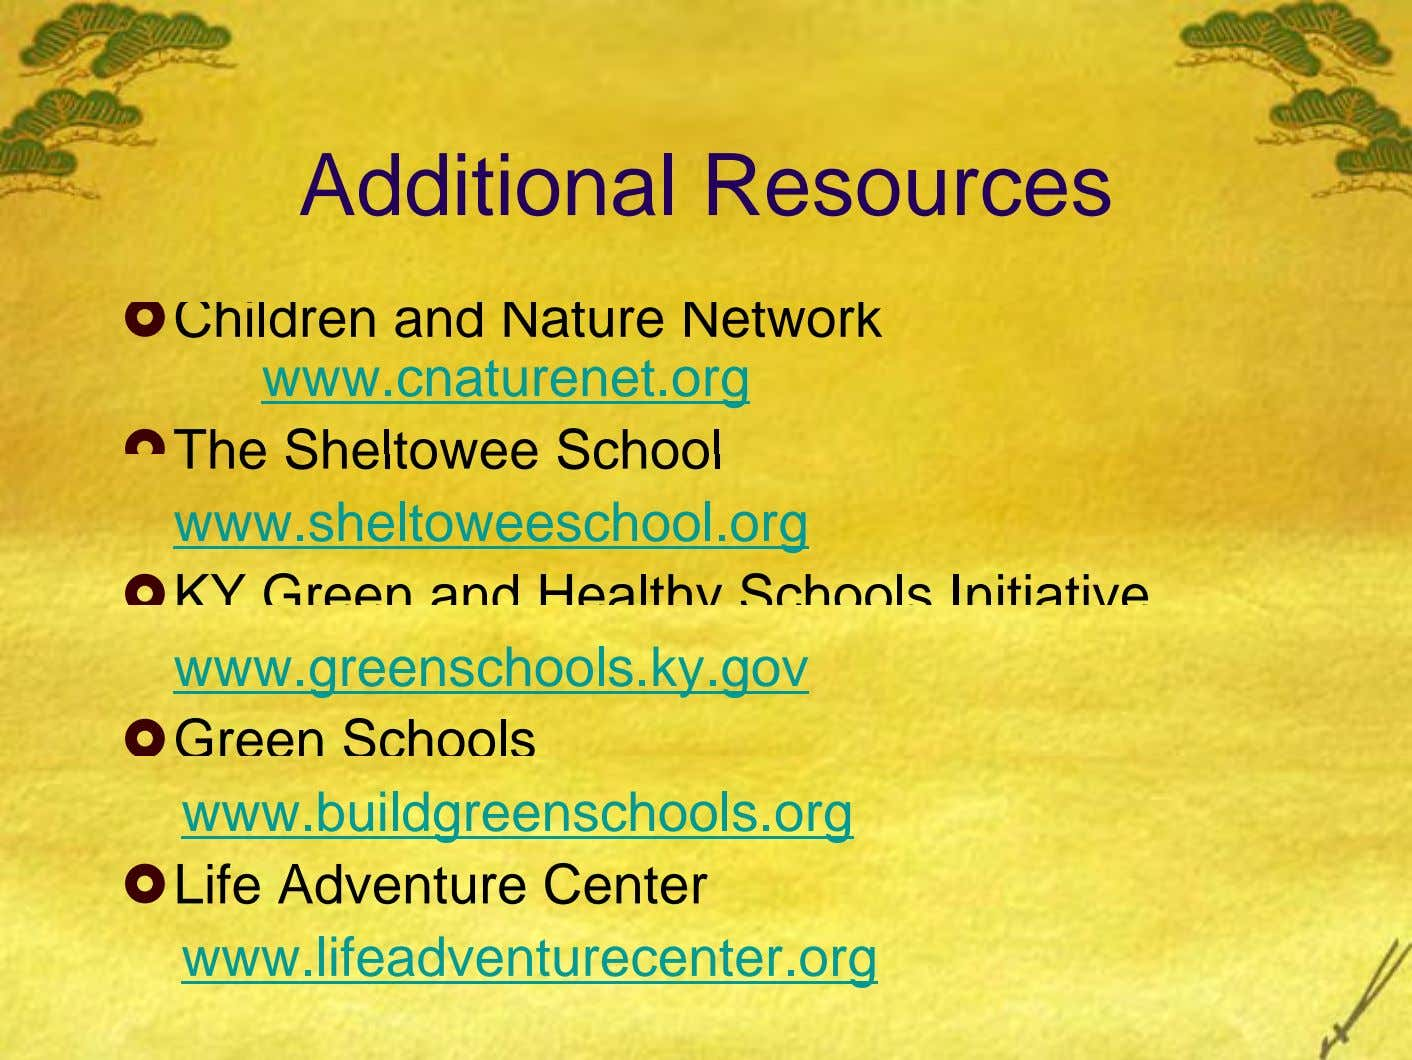 Additional Resources Children and Nature Network www.cnaturenet.org The Sheltowee School www.sheltoweeschool.org KY Green and Healthy Schools